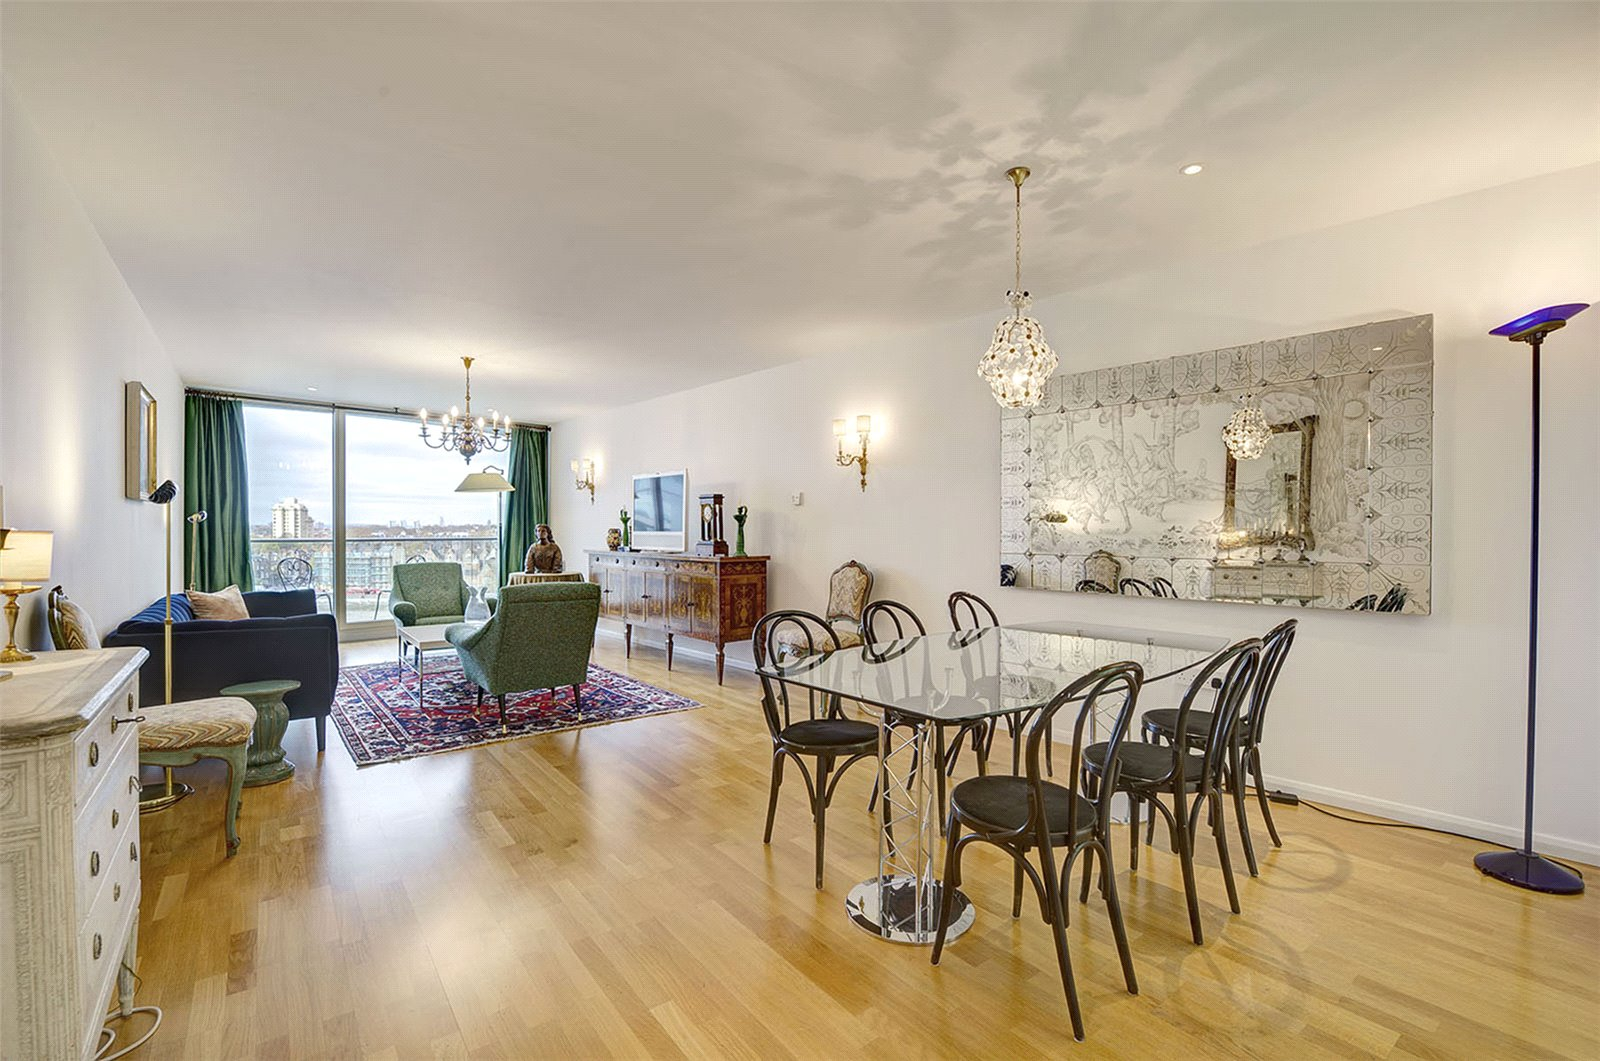 Apartment for Rent at Albion Riverside, Battersea, London, SW11 Albion Riverside, Battersea, London, SW11